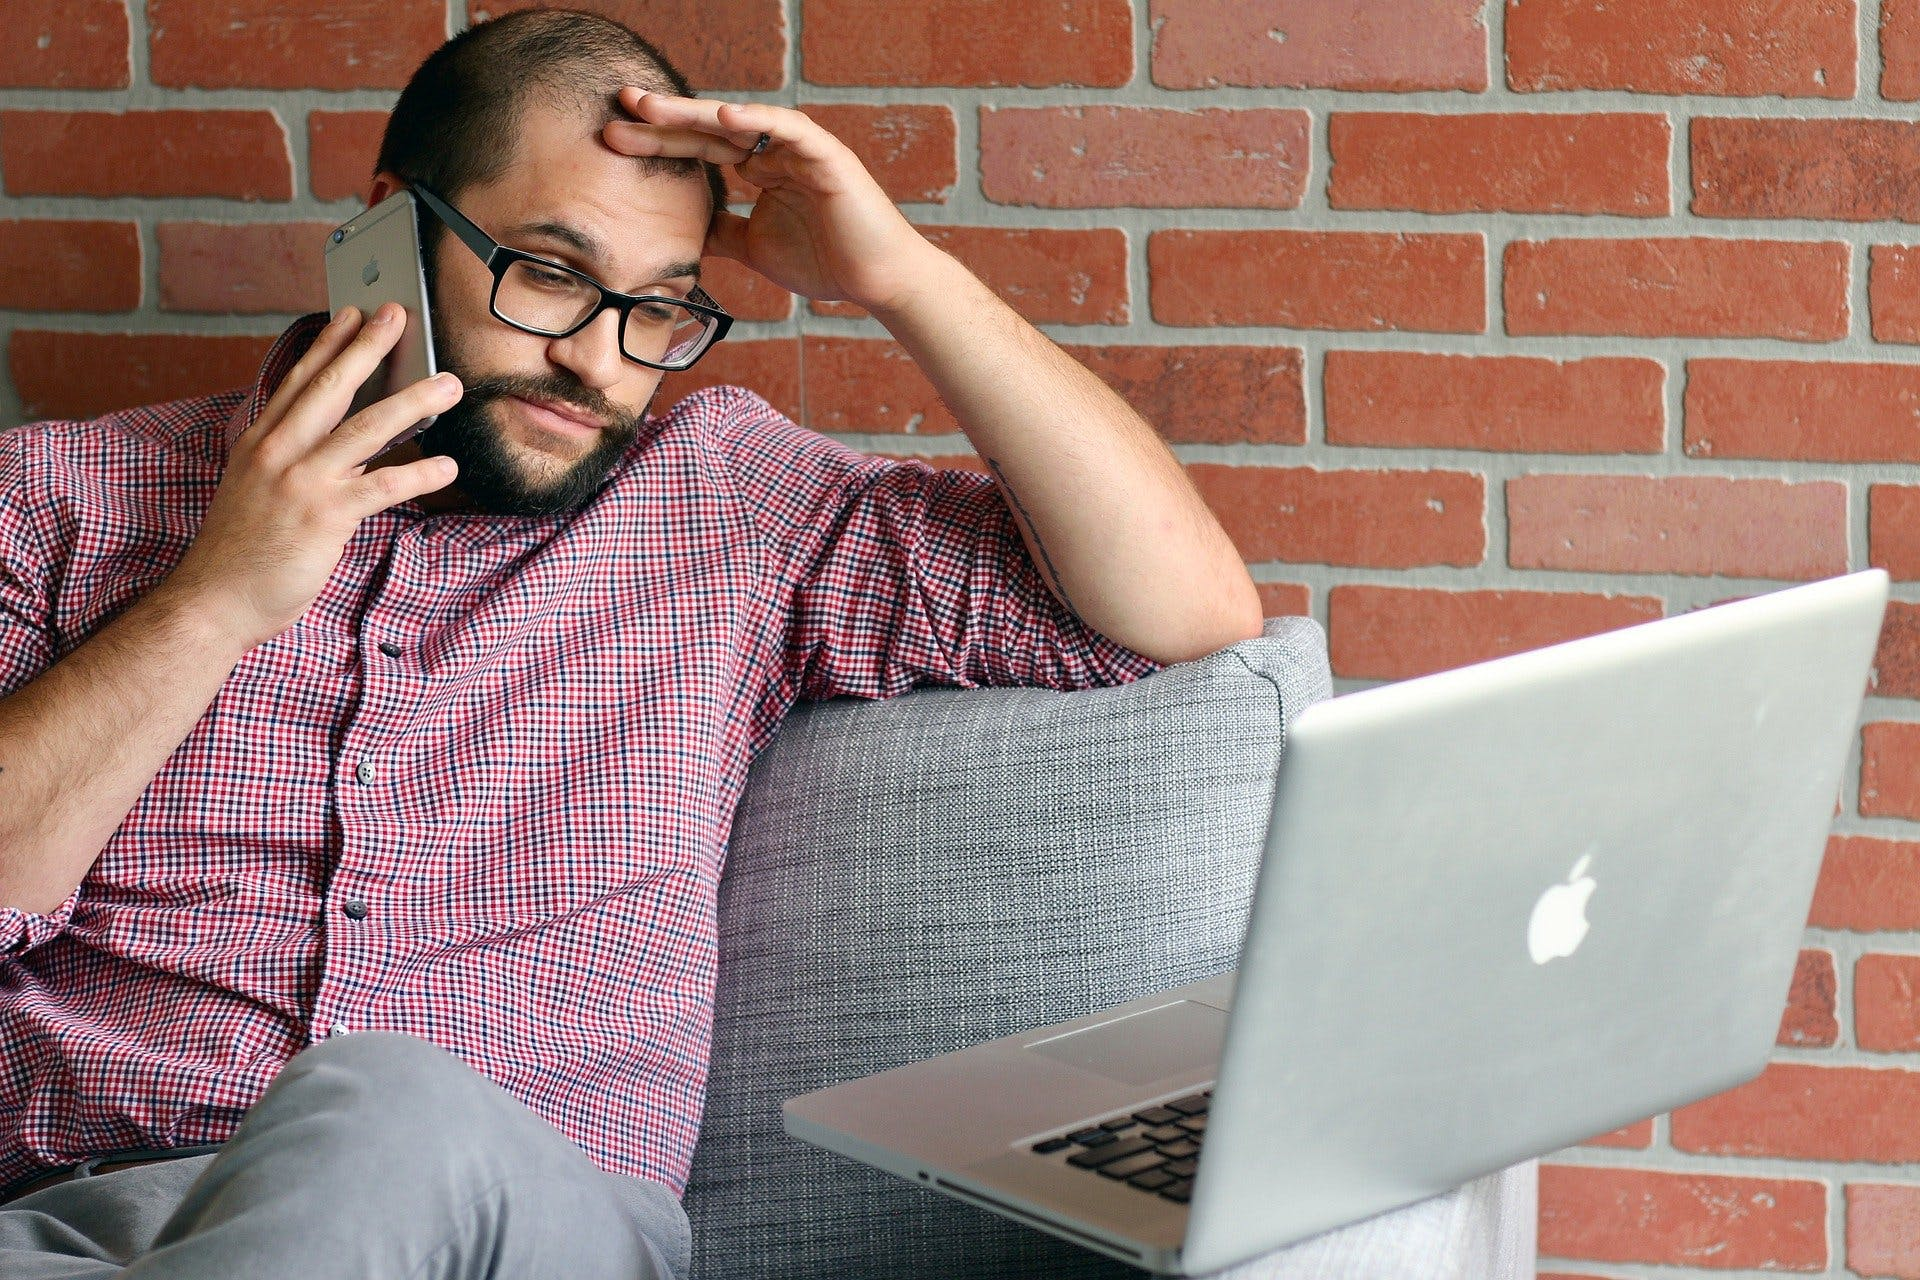 Man looking annoyed talking on the phone next to his laptop